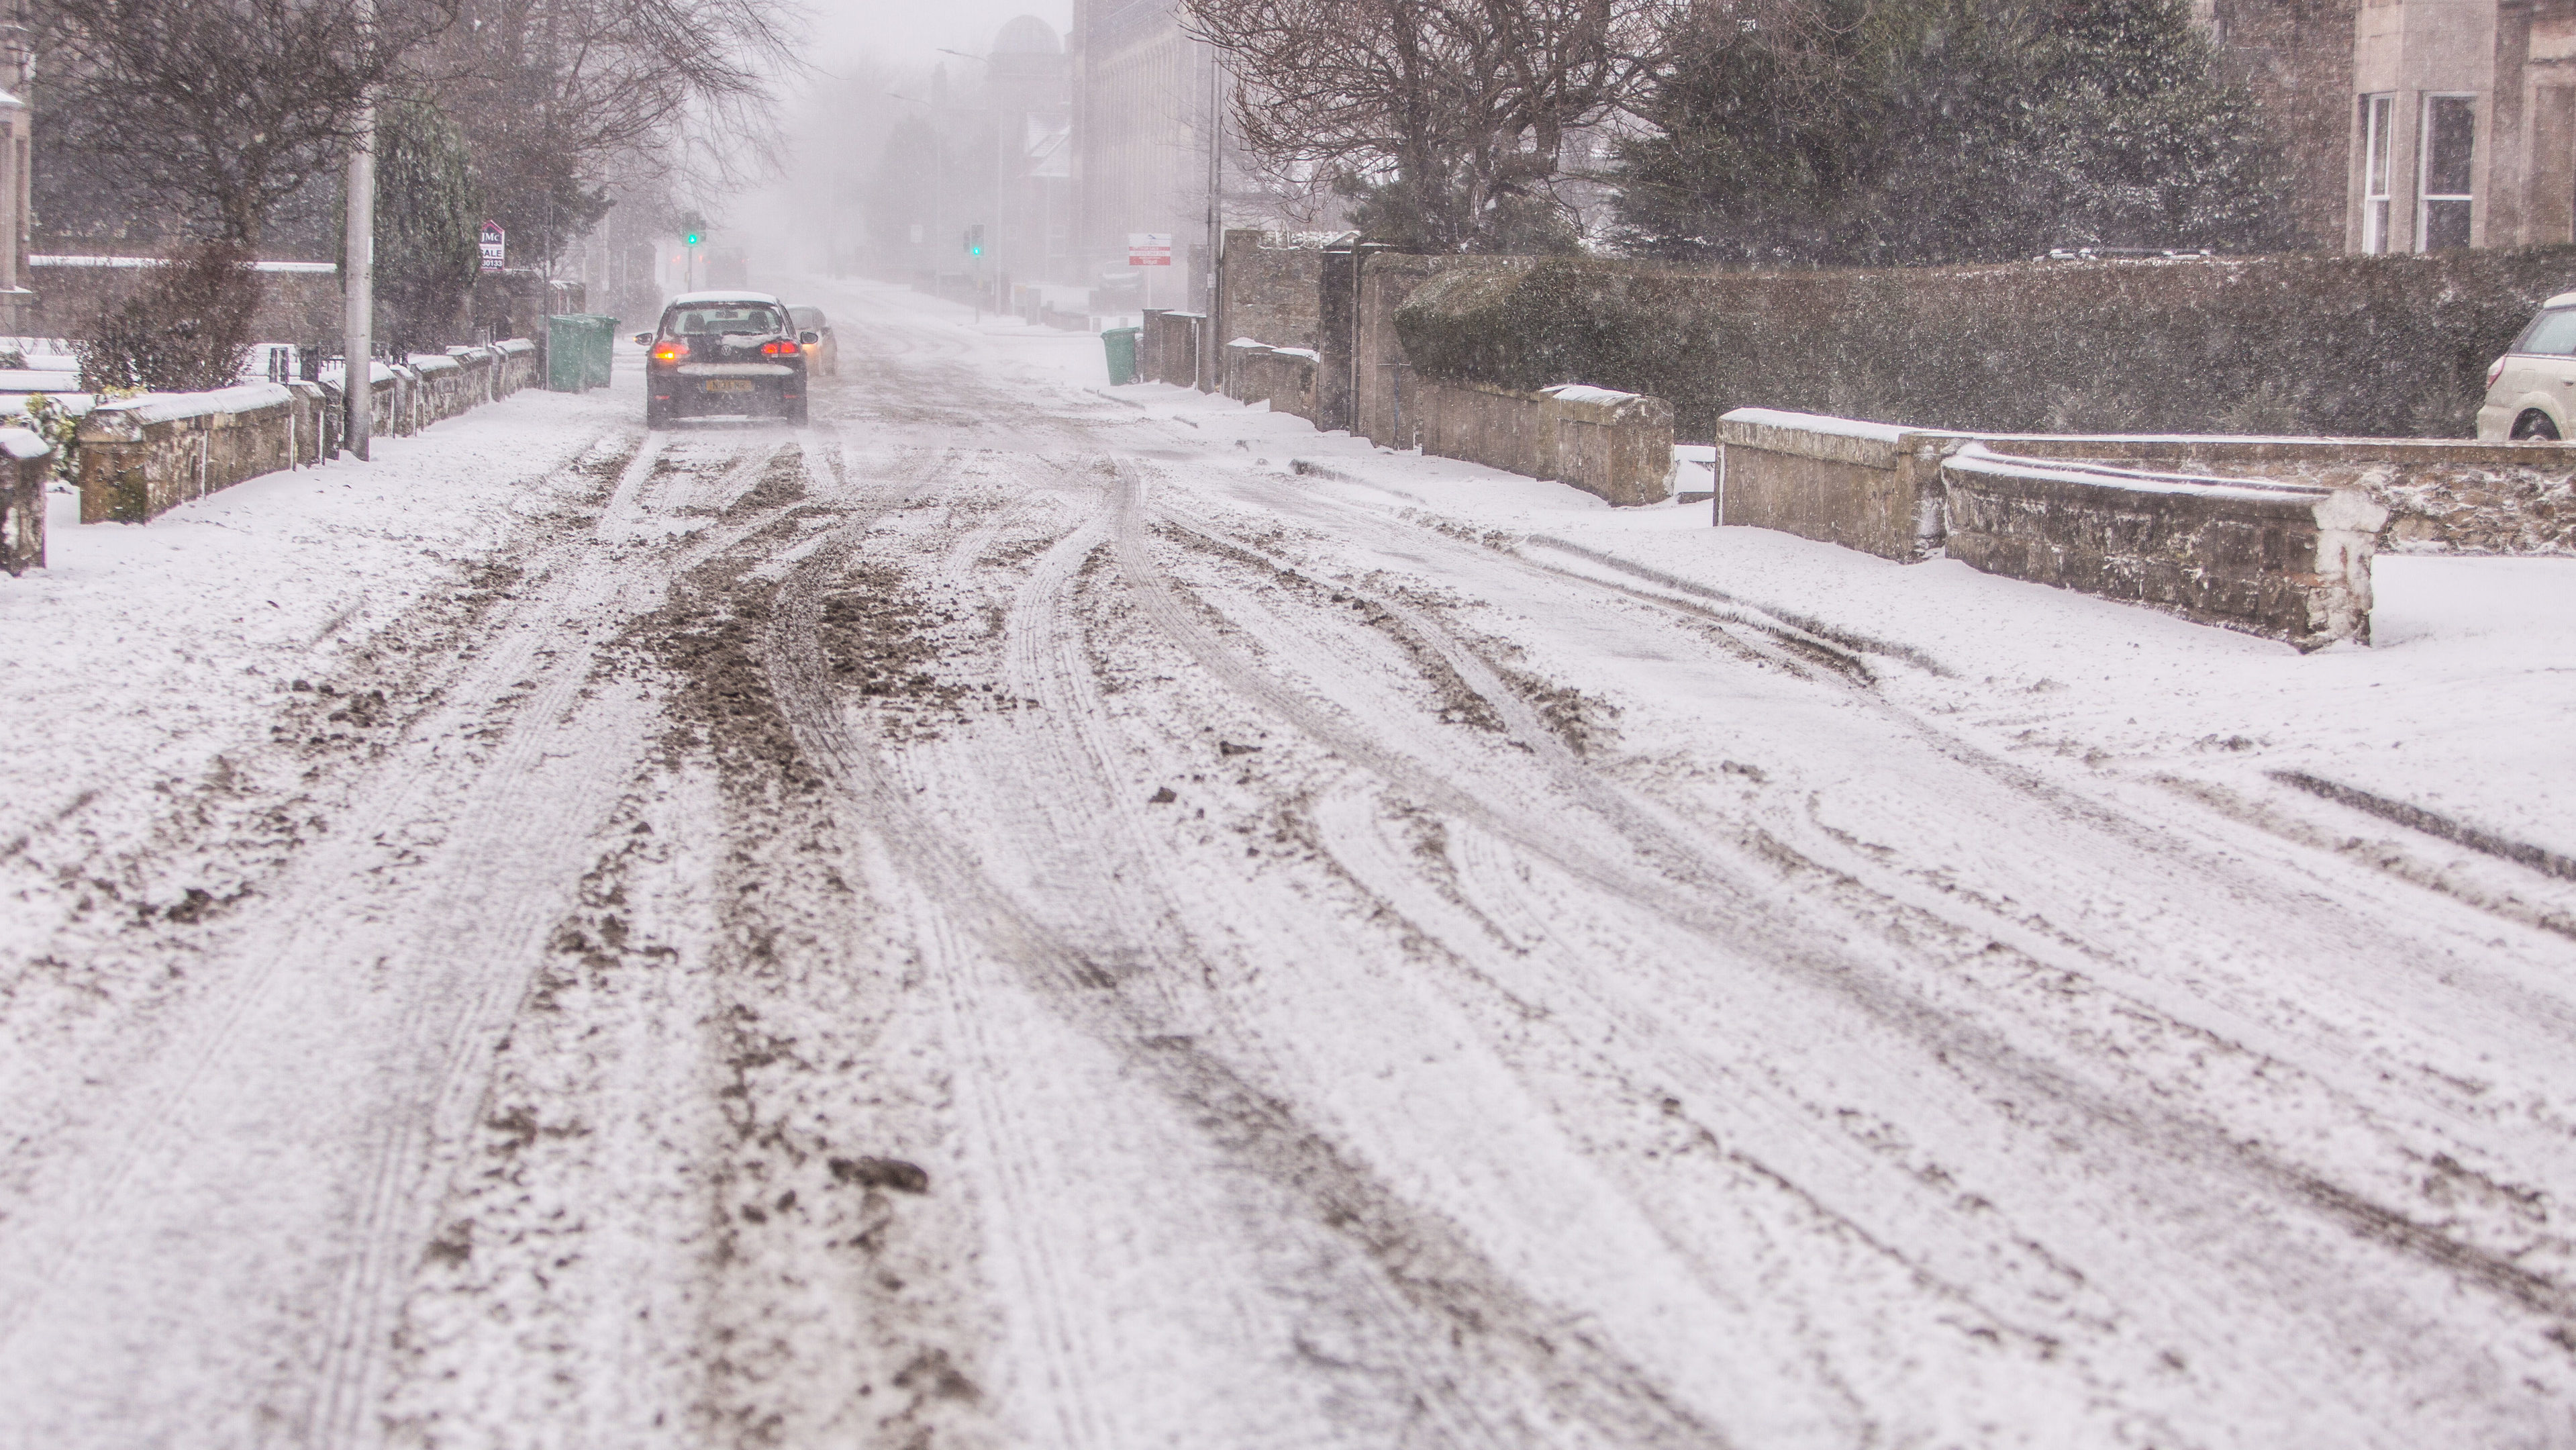 Roads have been treacherous throughout Fife today, prompting another early call off for schools.